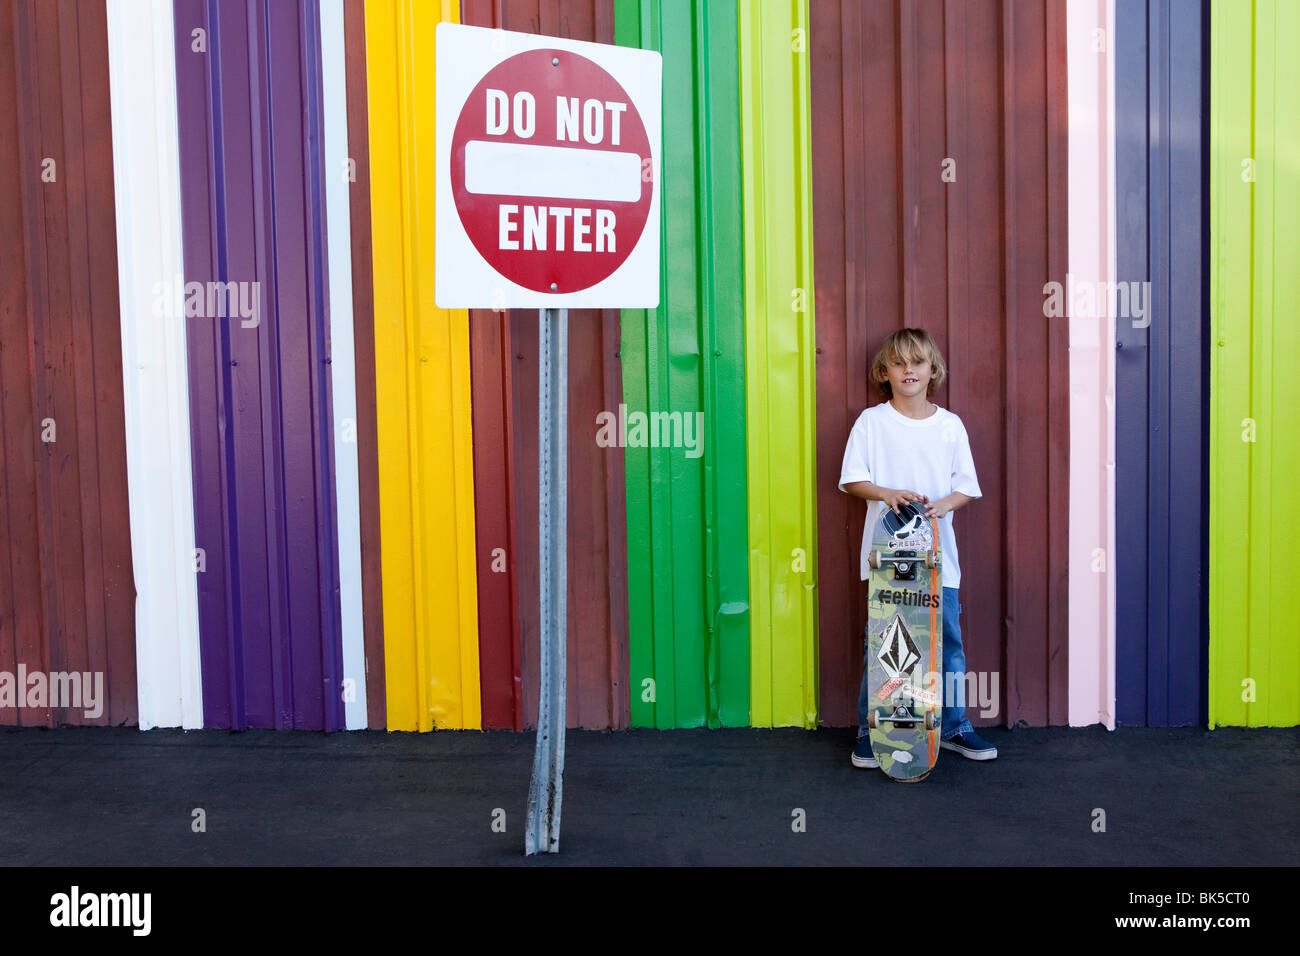 Boy with skateboard in front of colorful striped wall - Stock Image